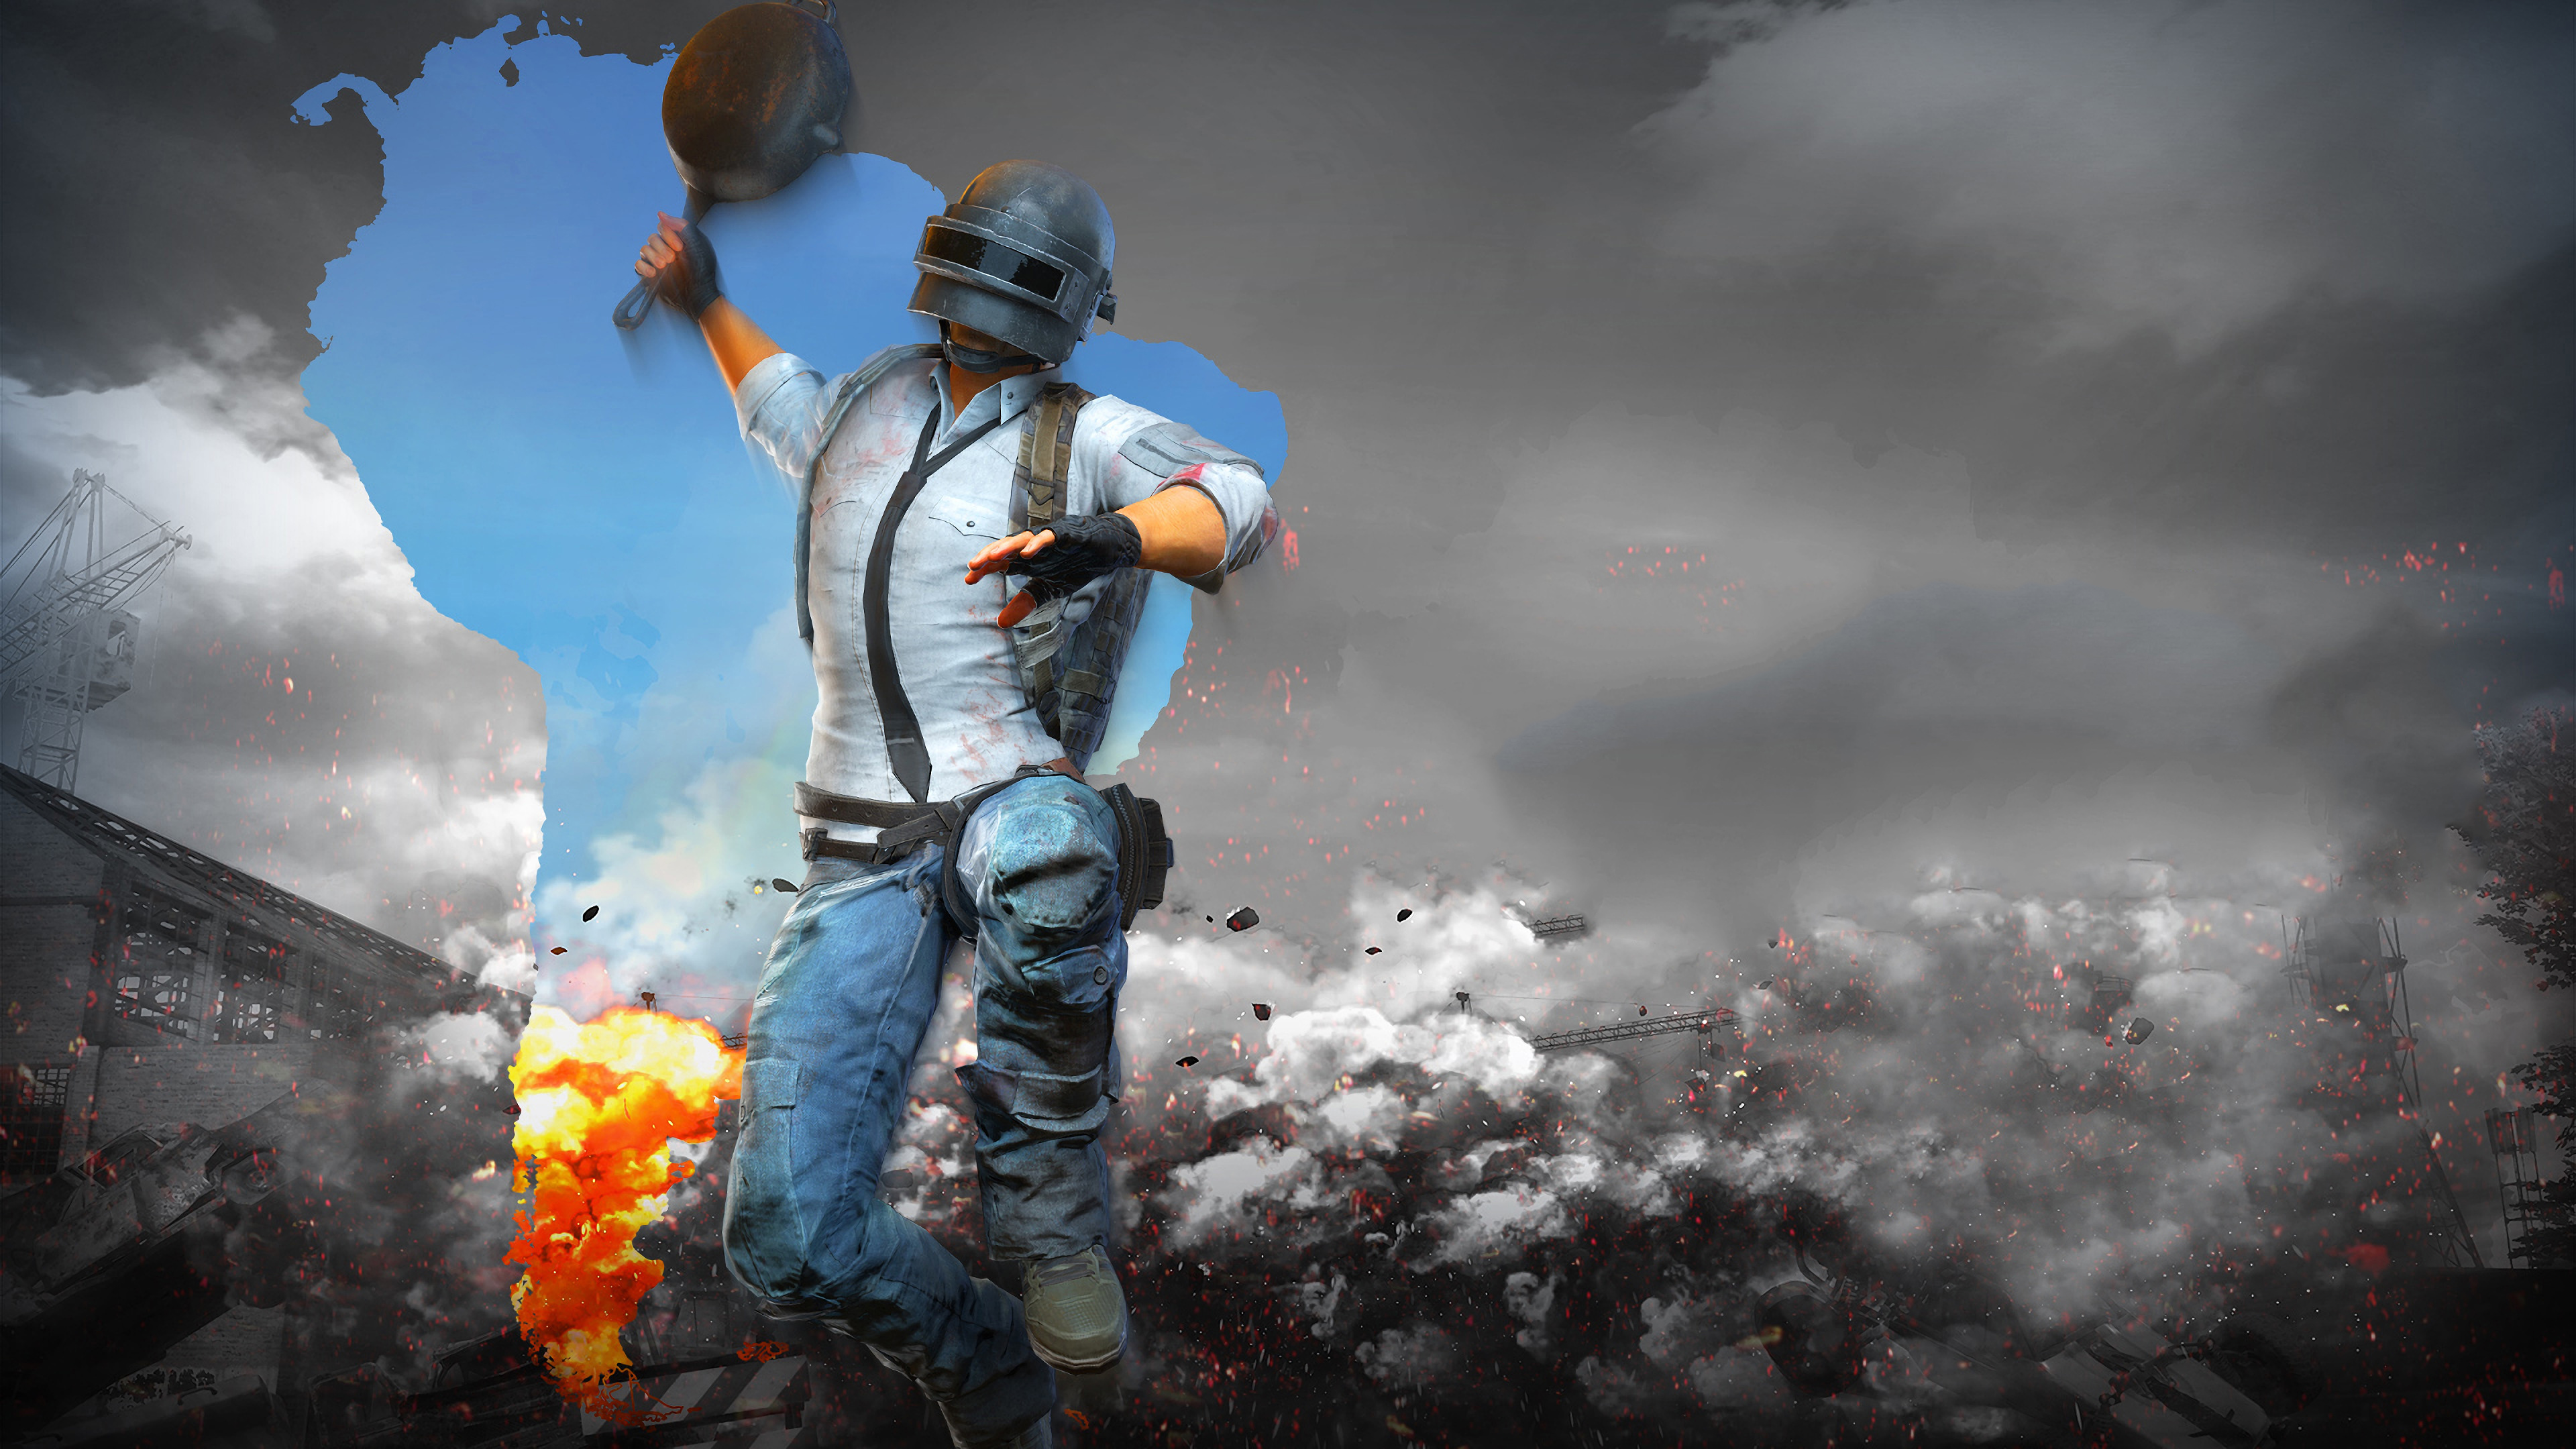 3840x2160 Pubg Game Helmet Guy 4k 4k Hd 4k Wallpapers: PUBG Helmet Man With Pan 4k, HD Games, 4k Wallpapers